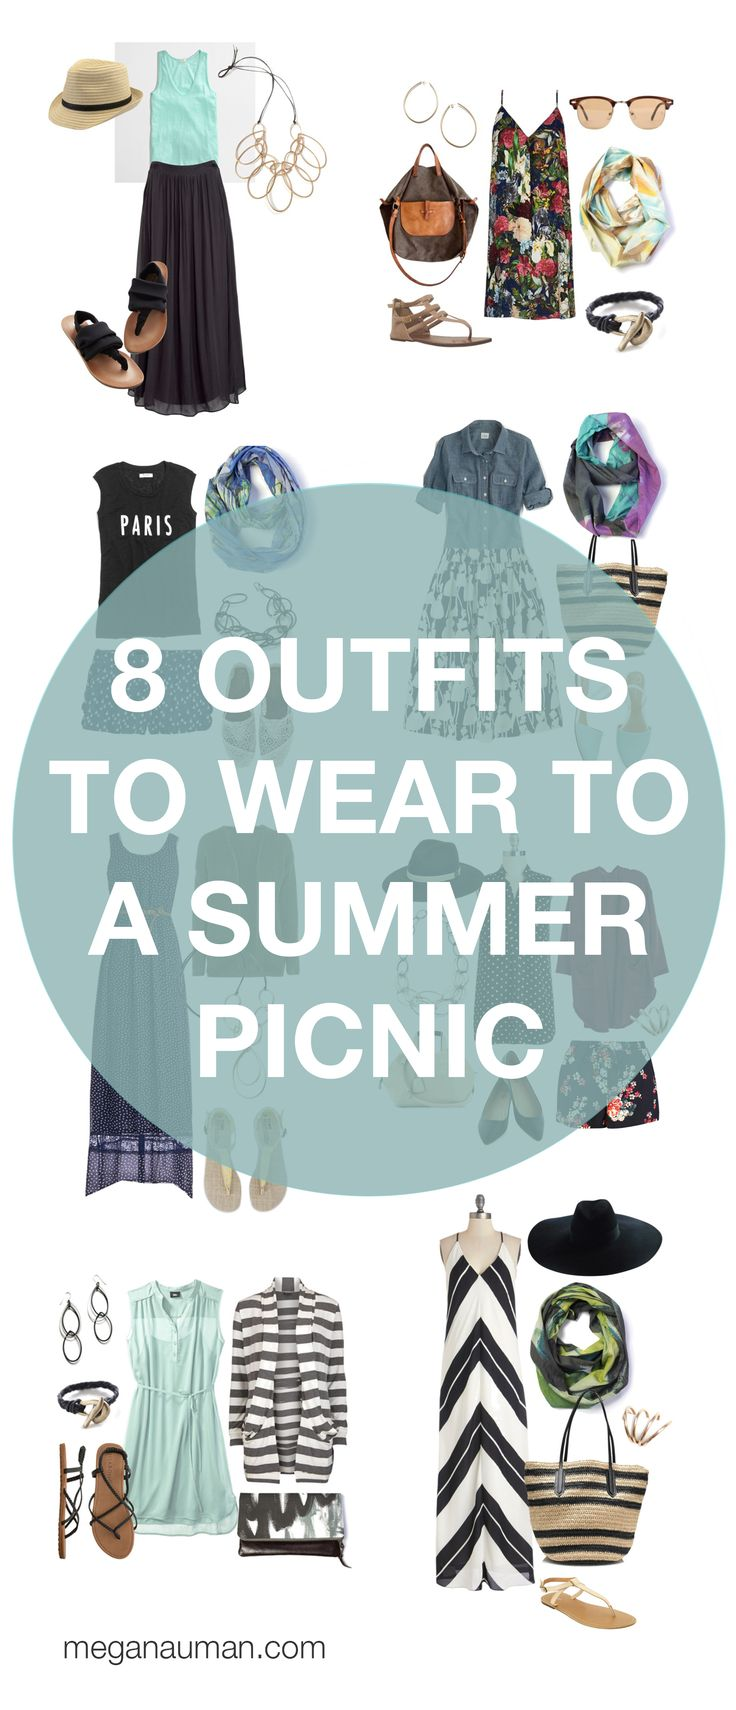 summer style: 8 outfits to wear to a picnic or barbecue // via megan auman